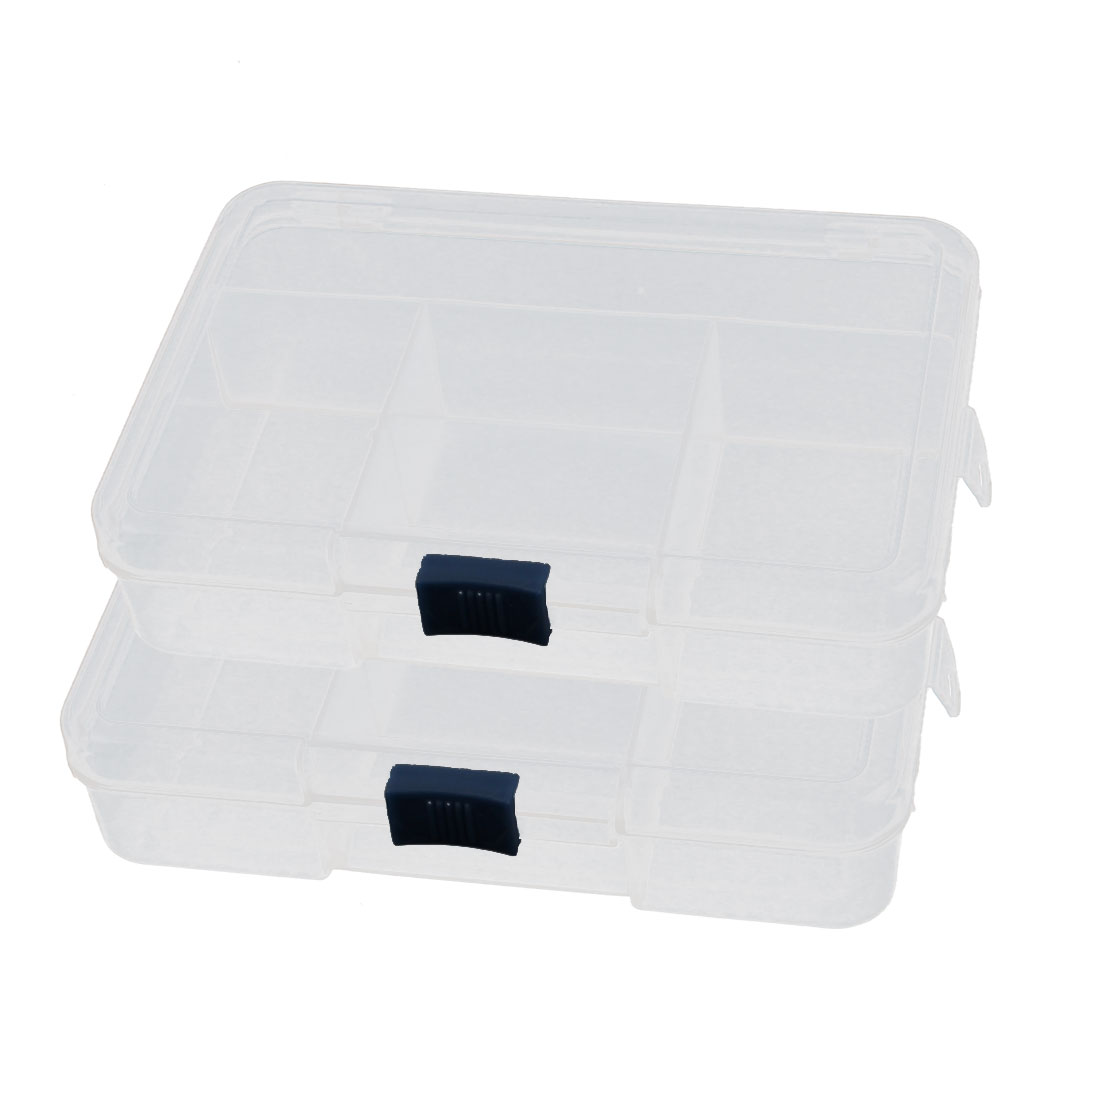 2 Pcs Plastic 5 Components Earrings Jewelry Organizer Storage Box Holder